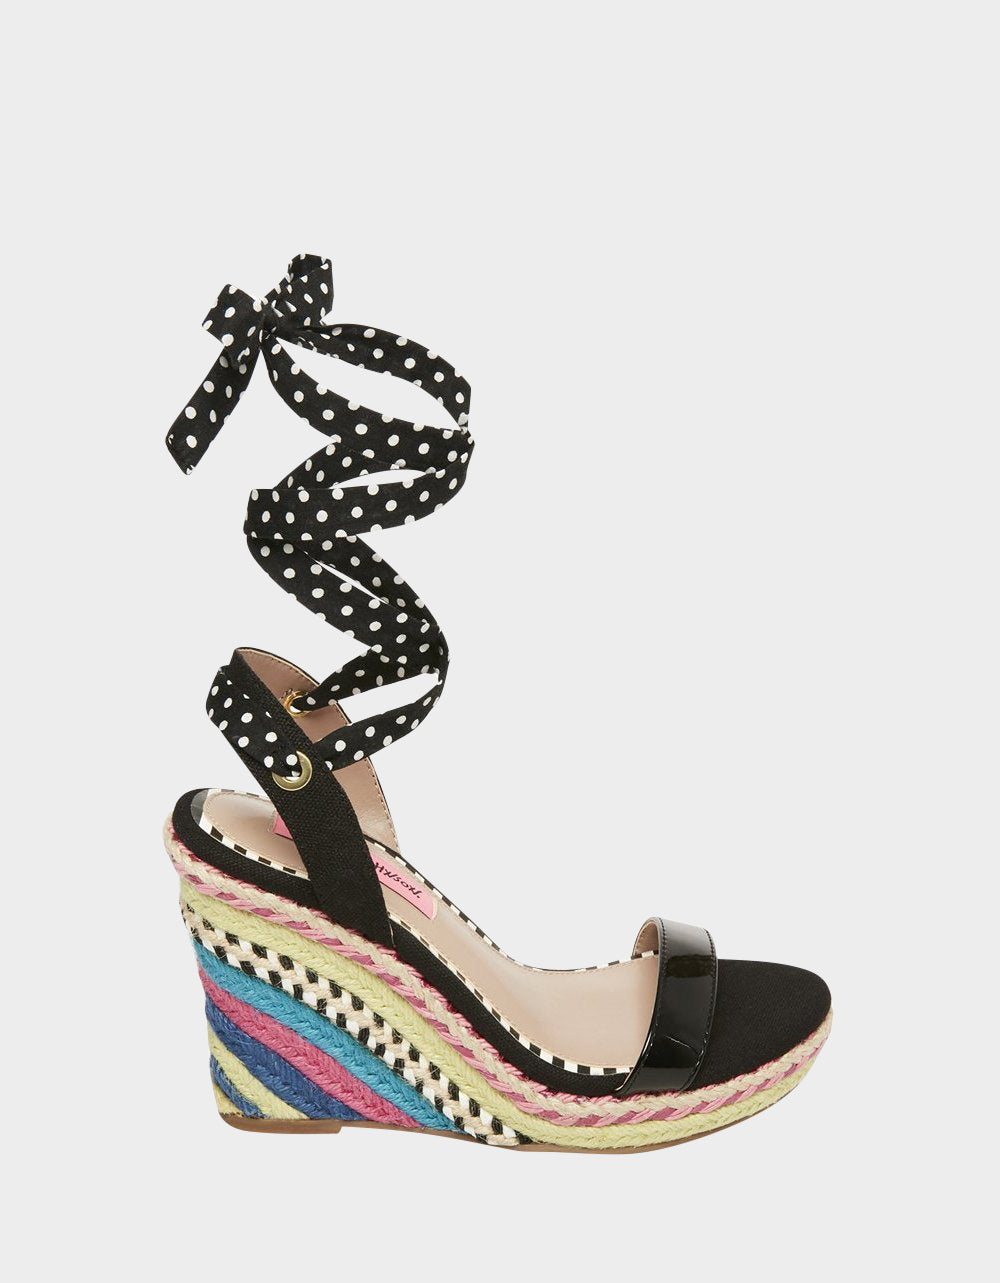 COLVIN BLACK - SHOES - Betsey Johnson